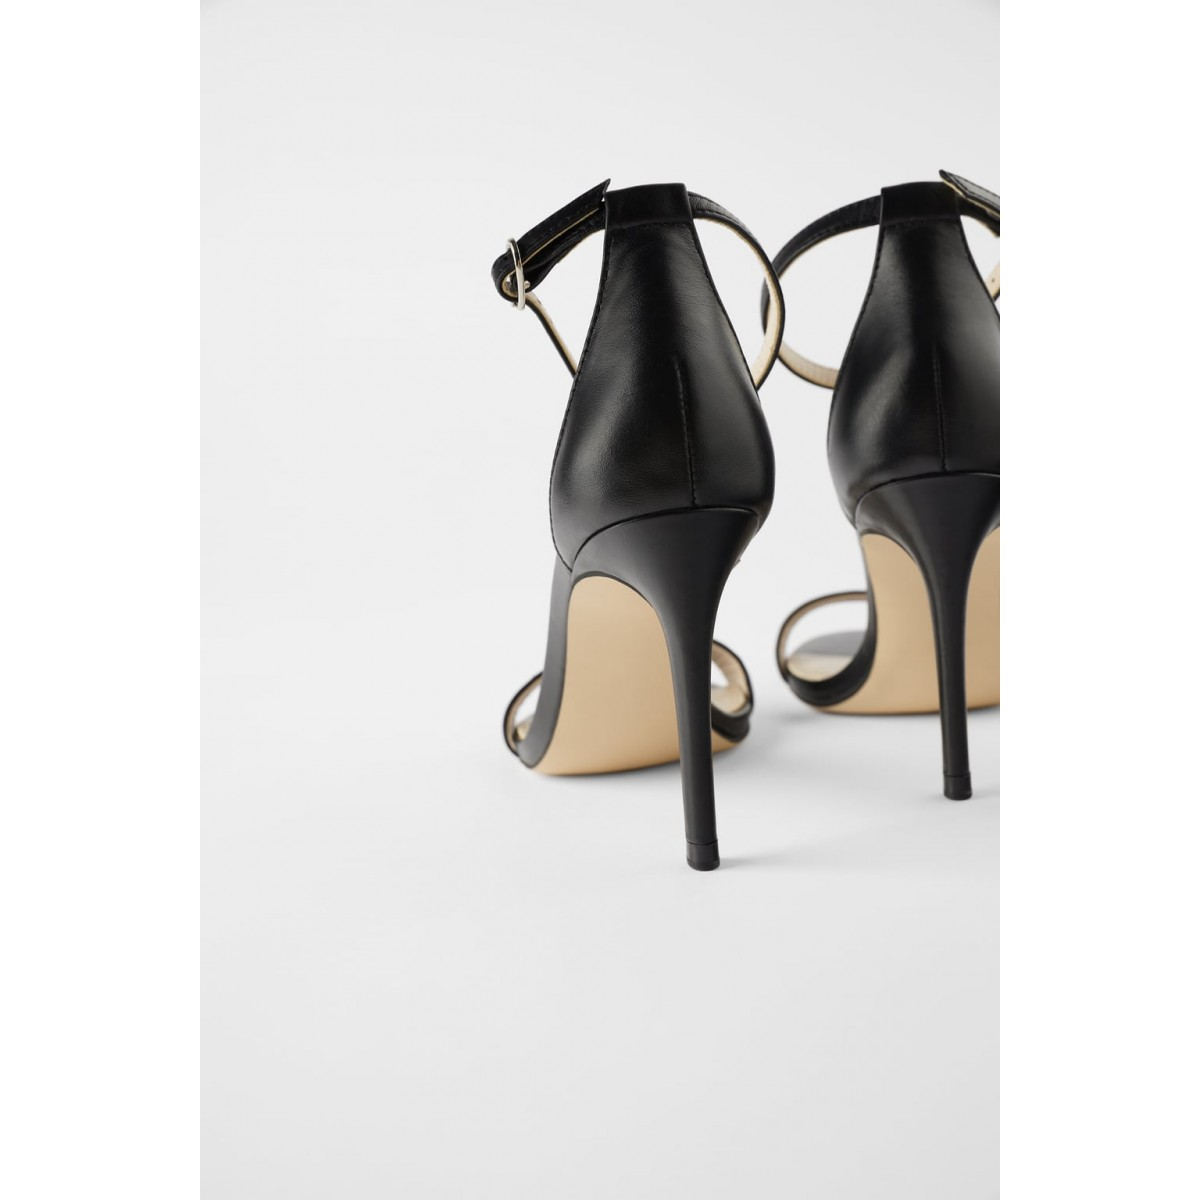 Zara Leather High Heels Sandals (Black)